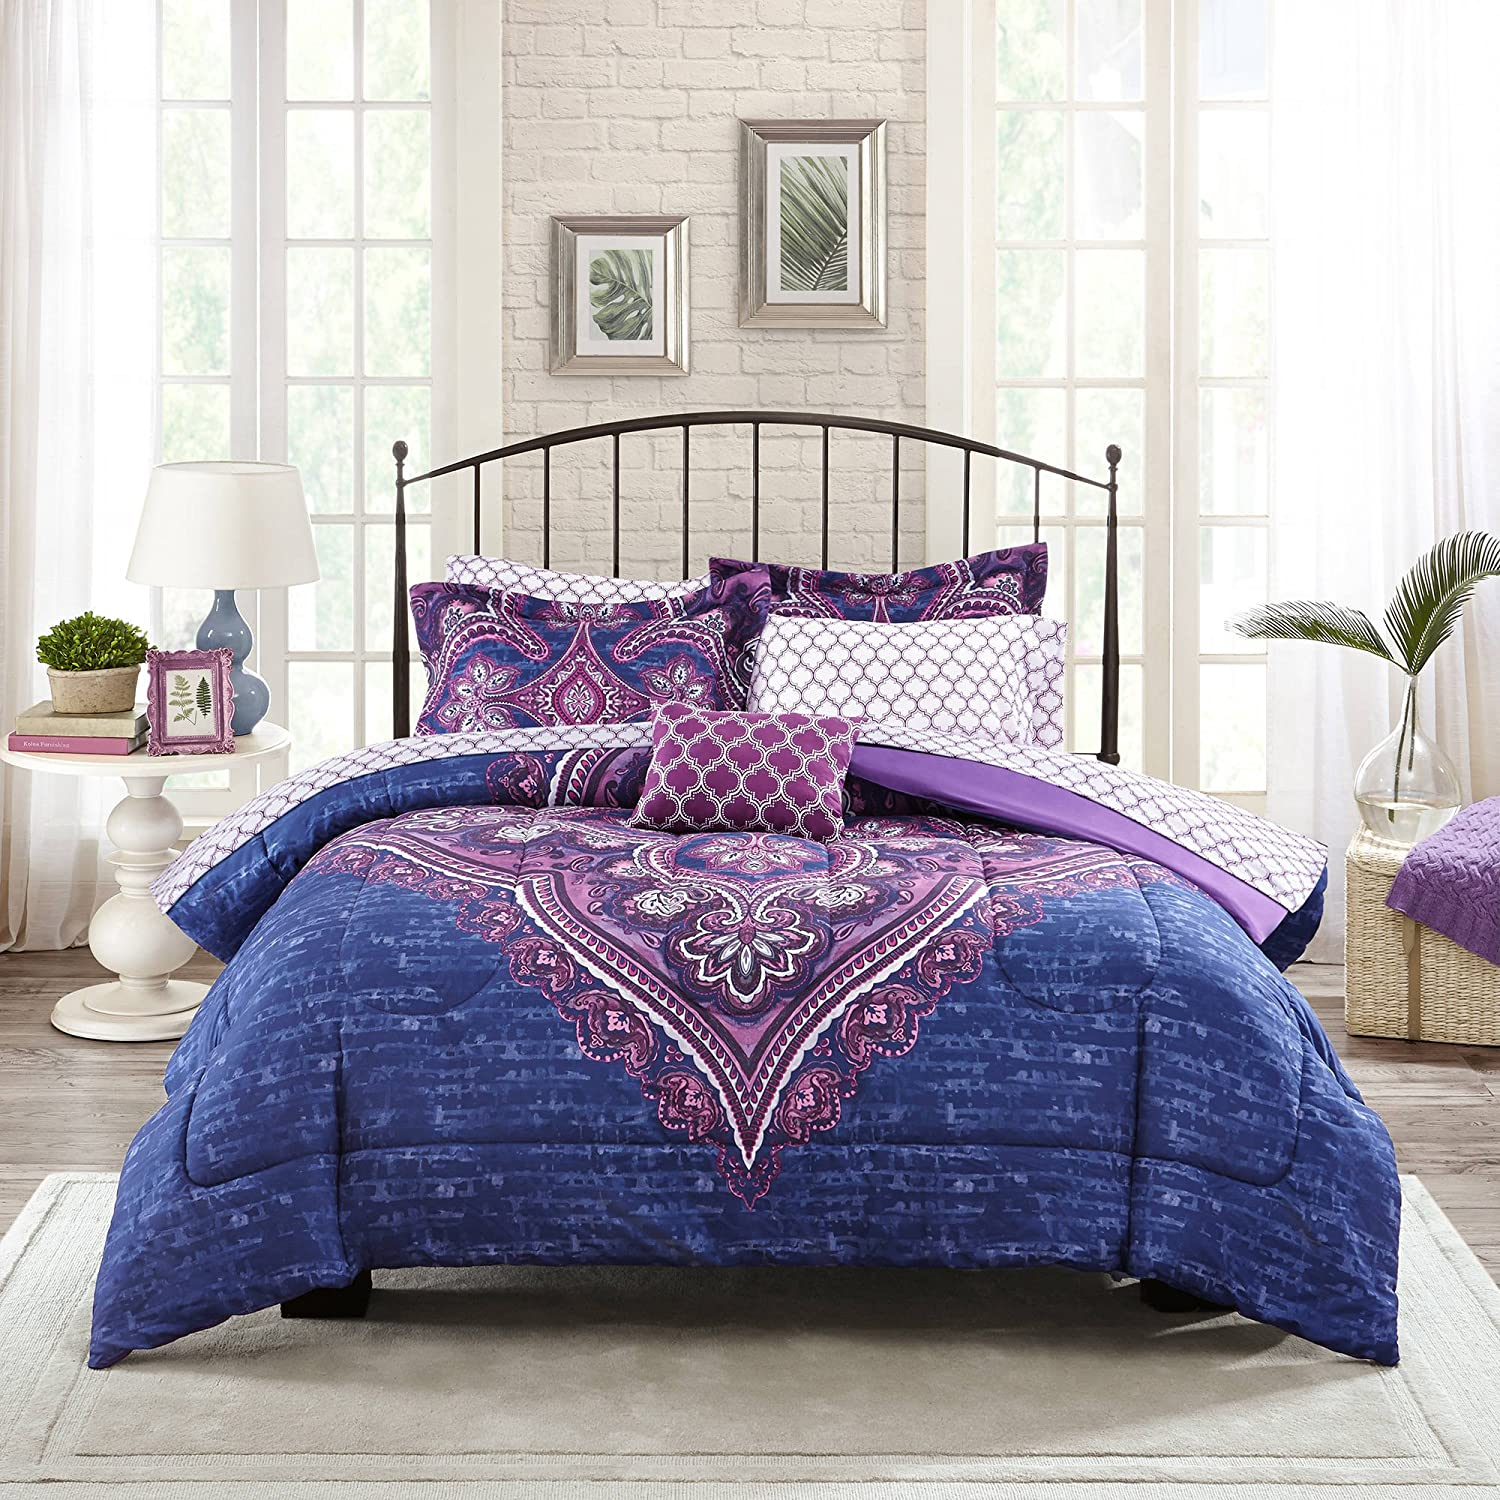 Amazon Mainstays Grace Medallion Purple Bed in a Bag plete